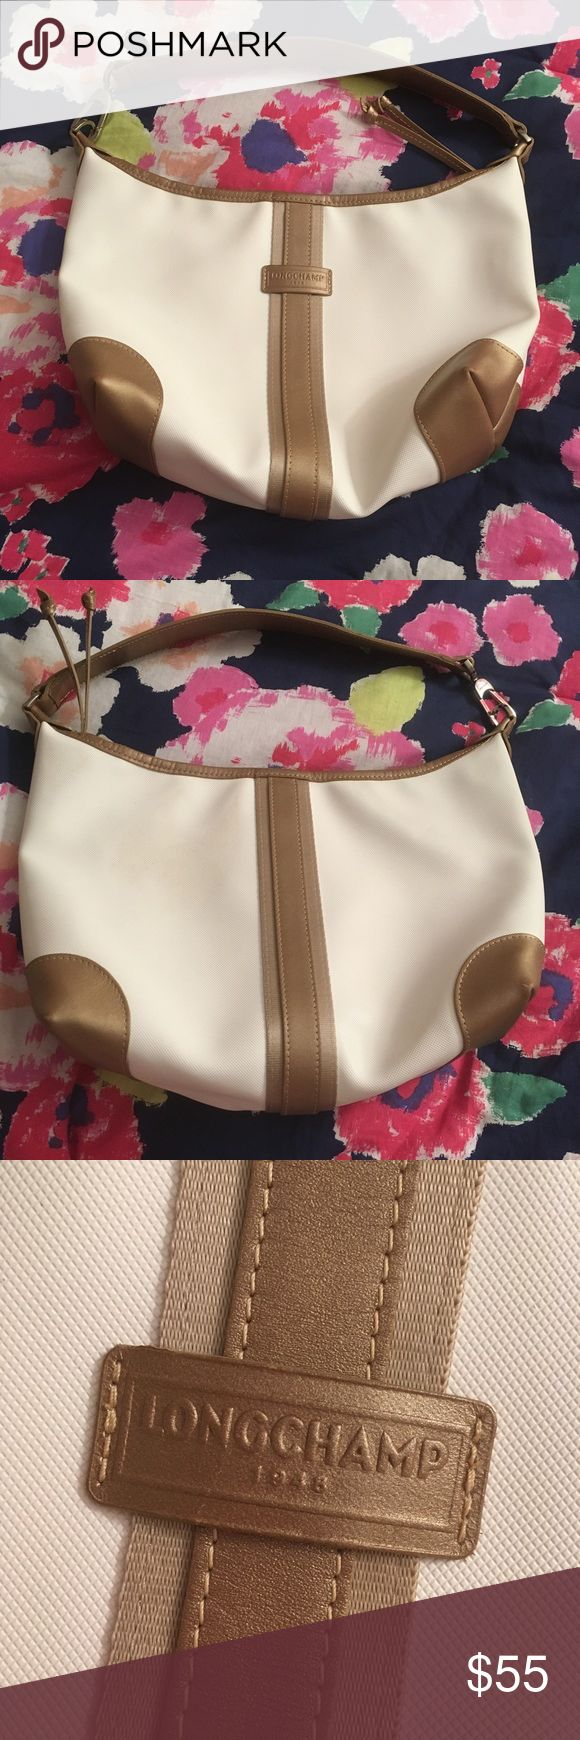 Vintage Longchamp White/Cream & Gold Shoulder Bag Pre-owned vintage longchamp in beige and gold/bronze. Some yellow spots in the interior and some on the back of the bag. Wear on the corners and leather are shown. Made in France. Leather. 8 inches x 10 inches Longchamp Bags Shoulder Bags